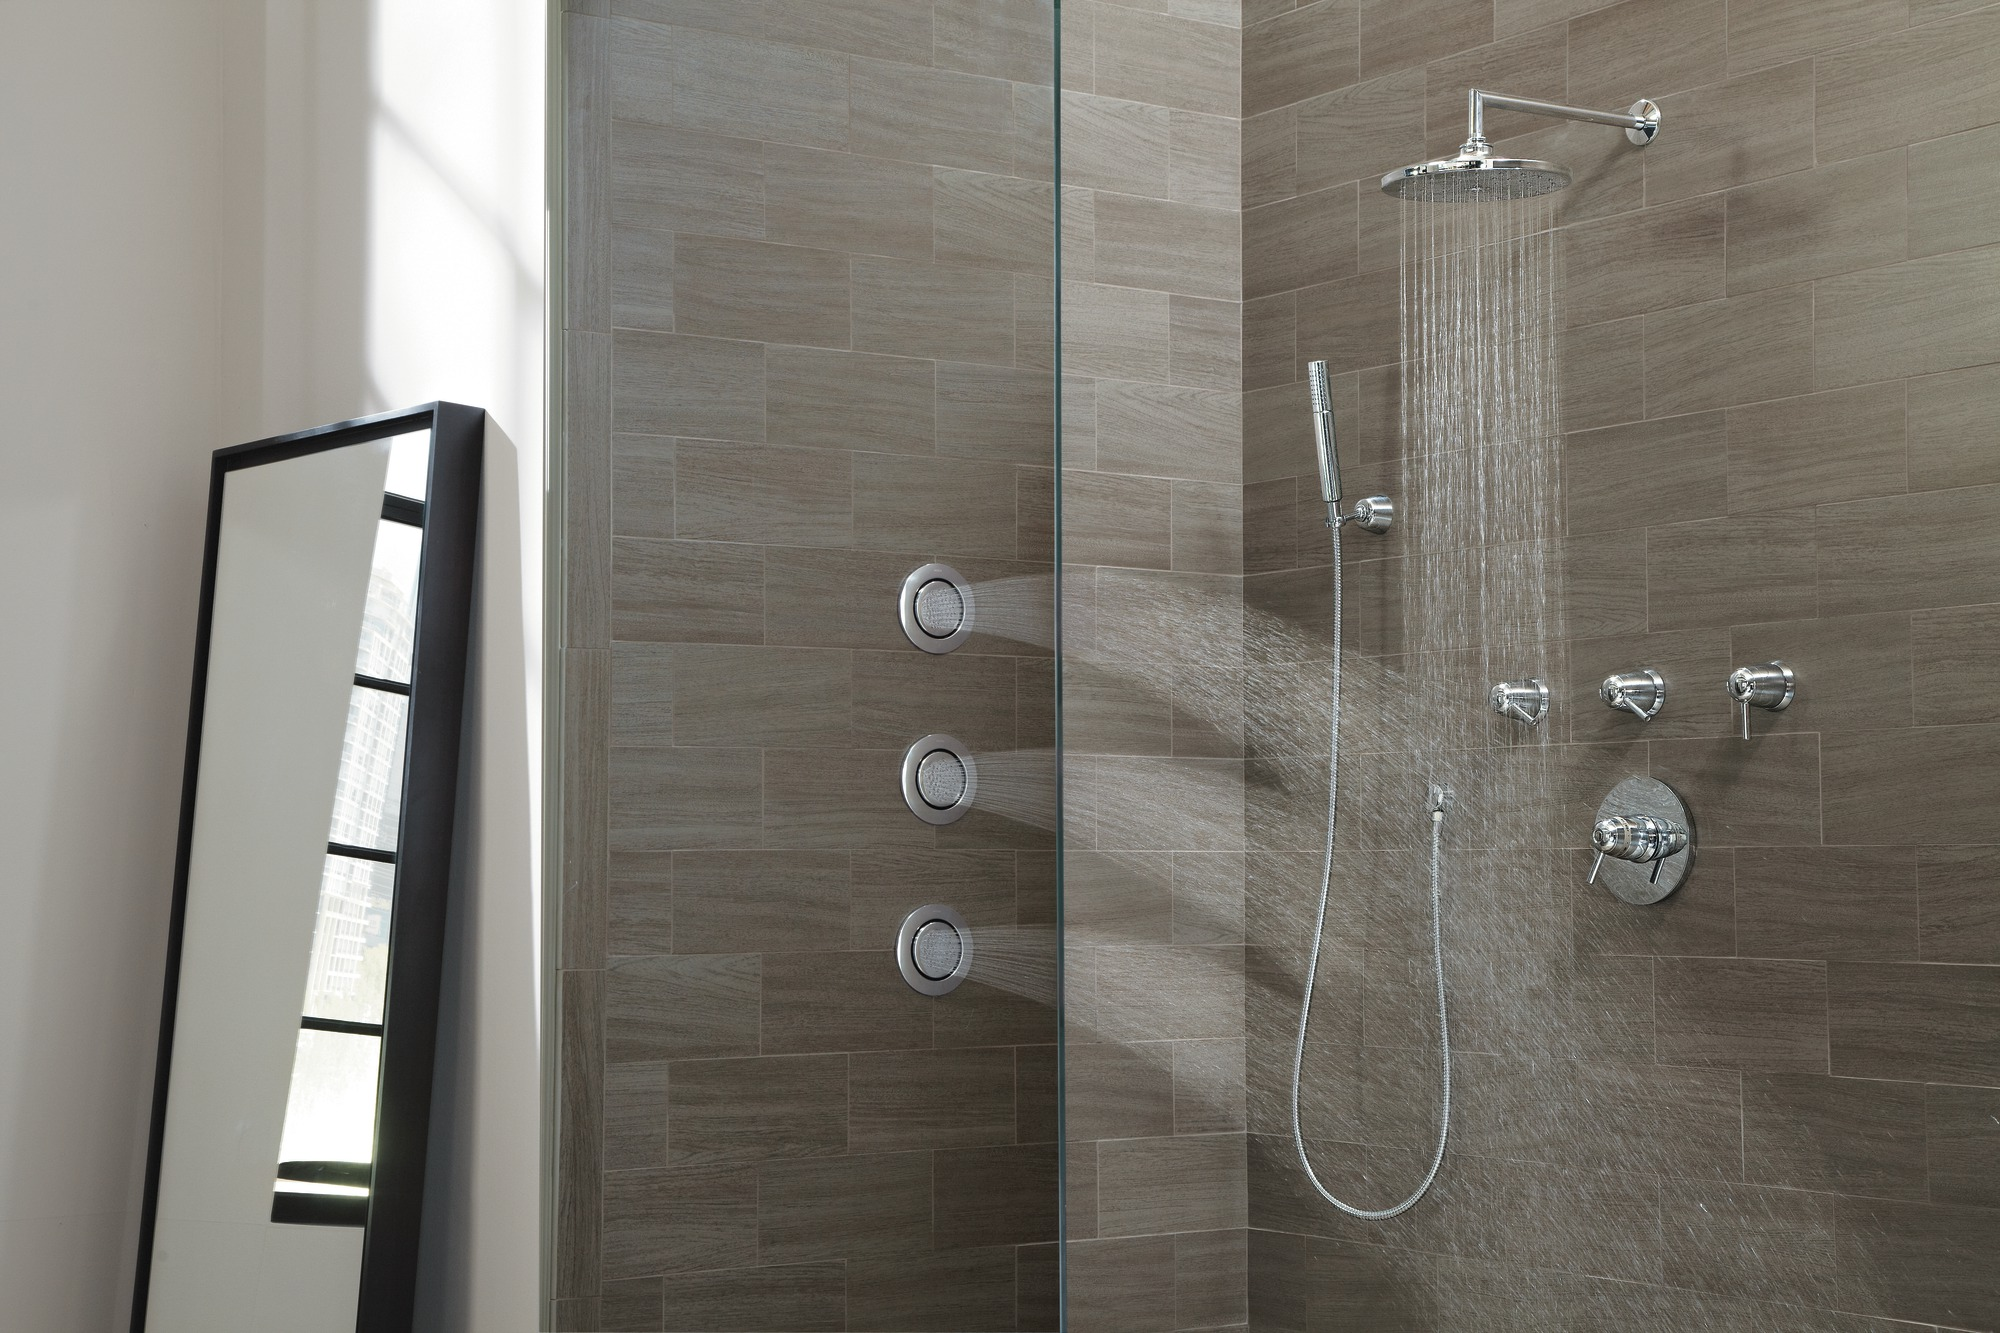 Vertical spa systems trusted e blogs for Body spray shower systems